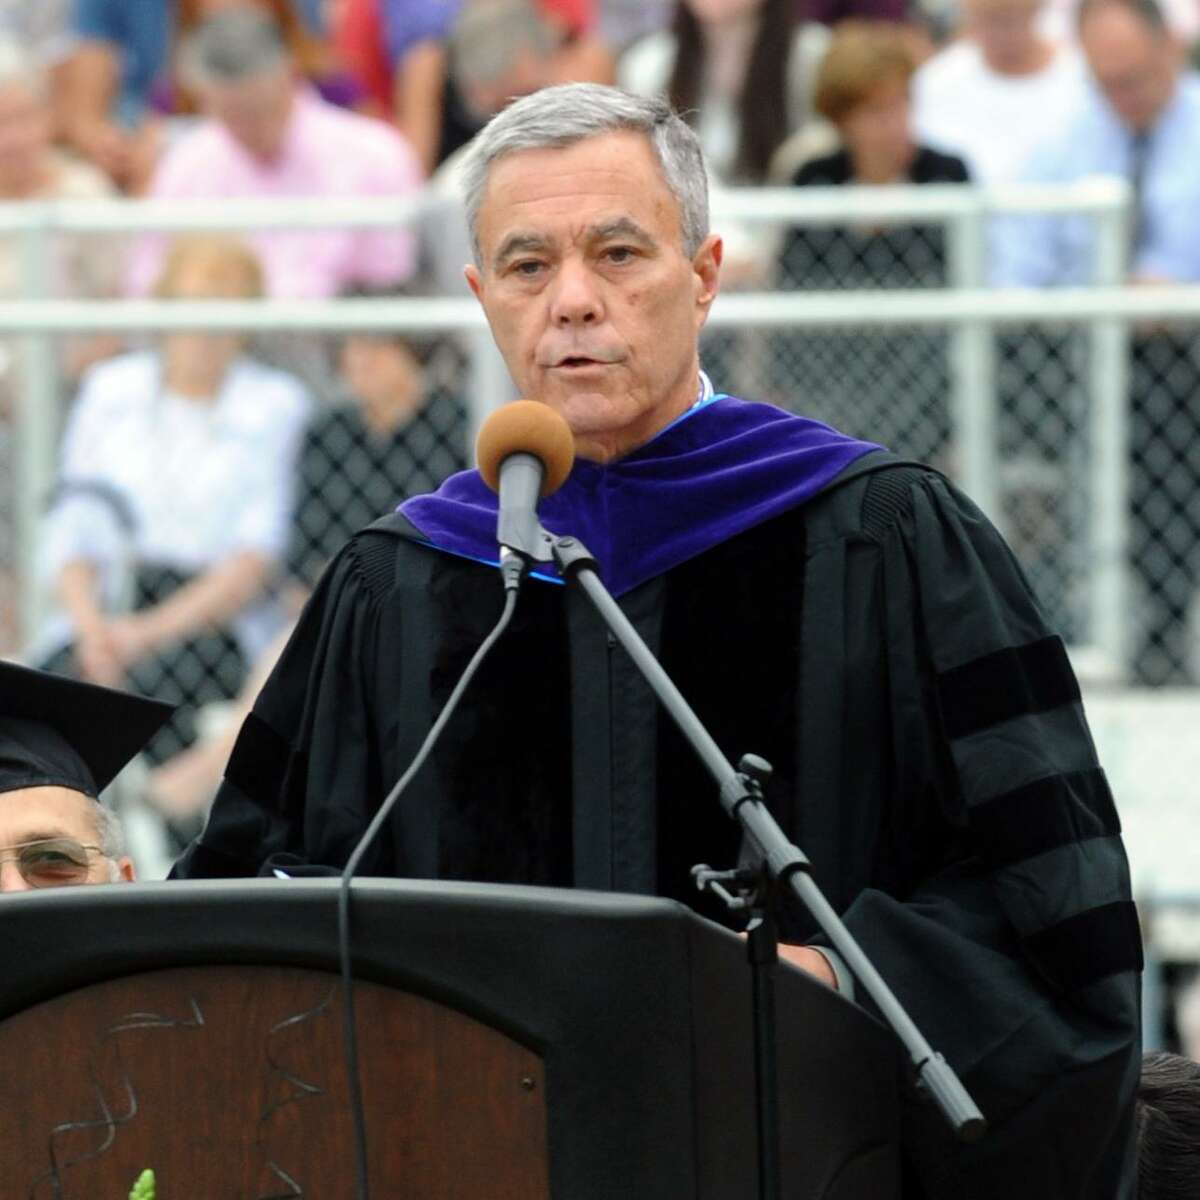 Stephen Wright, then Chairman of the Board of the Education at Trumbull High School's Class of 2012 graduation ceremony. Wright was arrested for violating his probation after serving a prison term for four drunken driving arrests in 12 weeks. He was sentenced on Dec. 1 to seven months in prison for violating his probation.